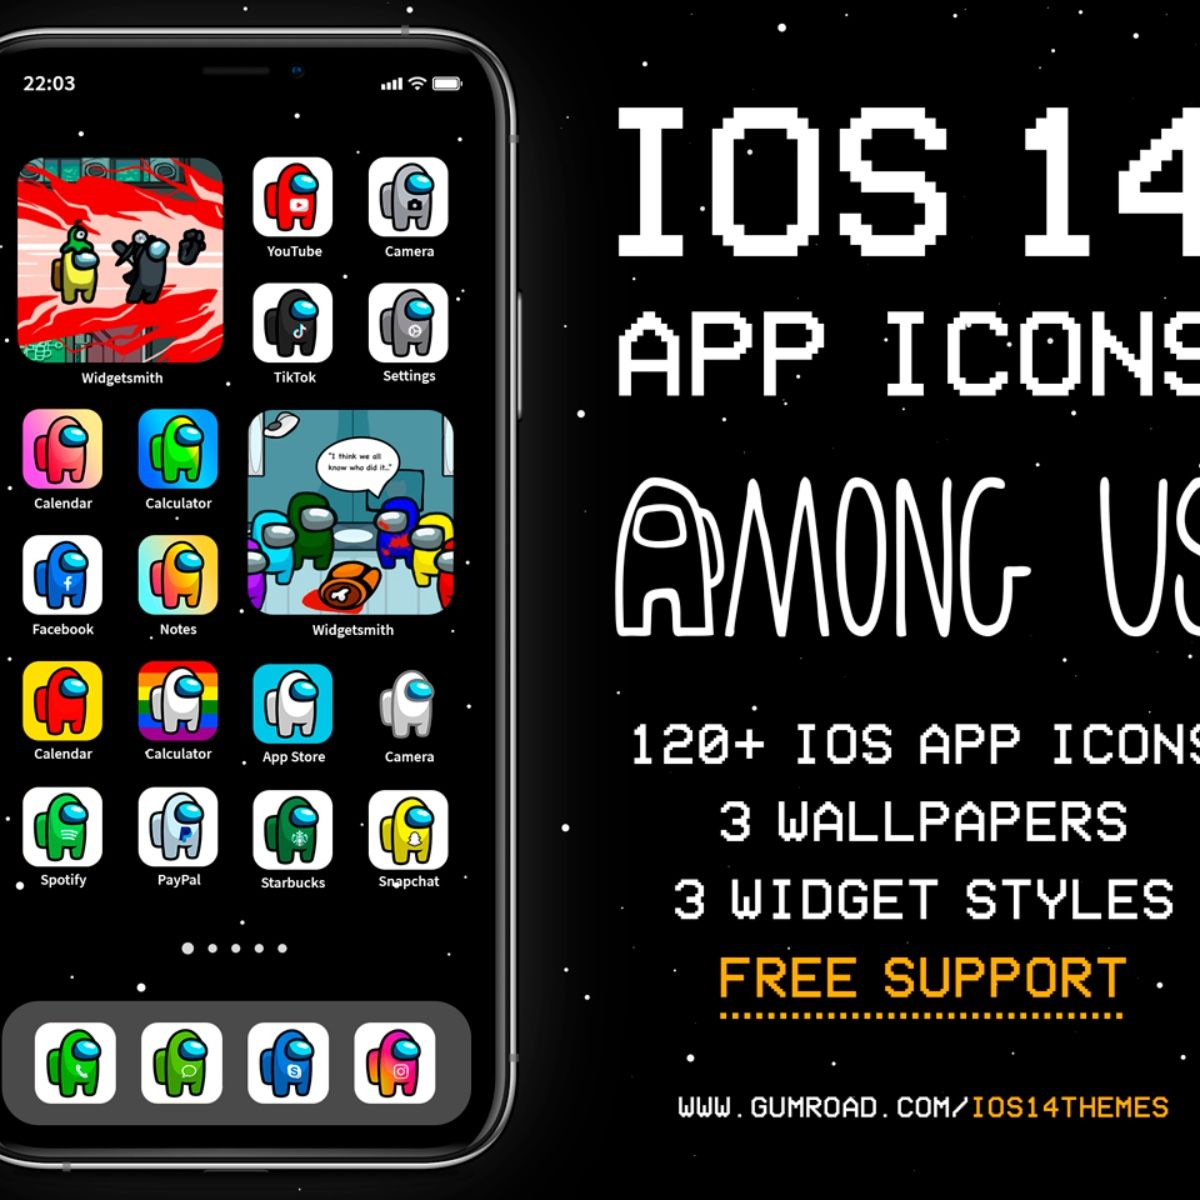 Among Us Ios 14 App Icons Ios14 Among Us Aesthetic Home Screen Iphone Icons Among Us Iphone Theme In 2020 App Icon Themes App Iphone Icon